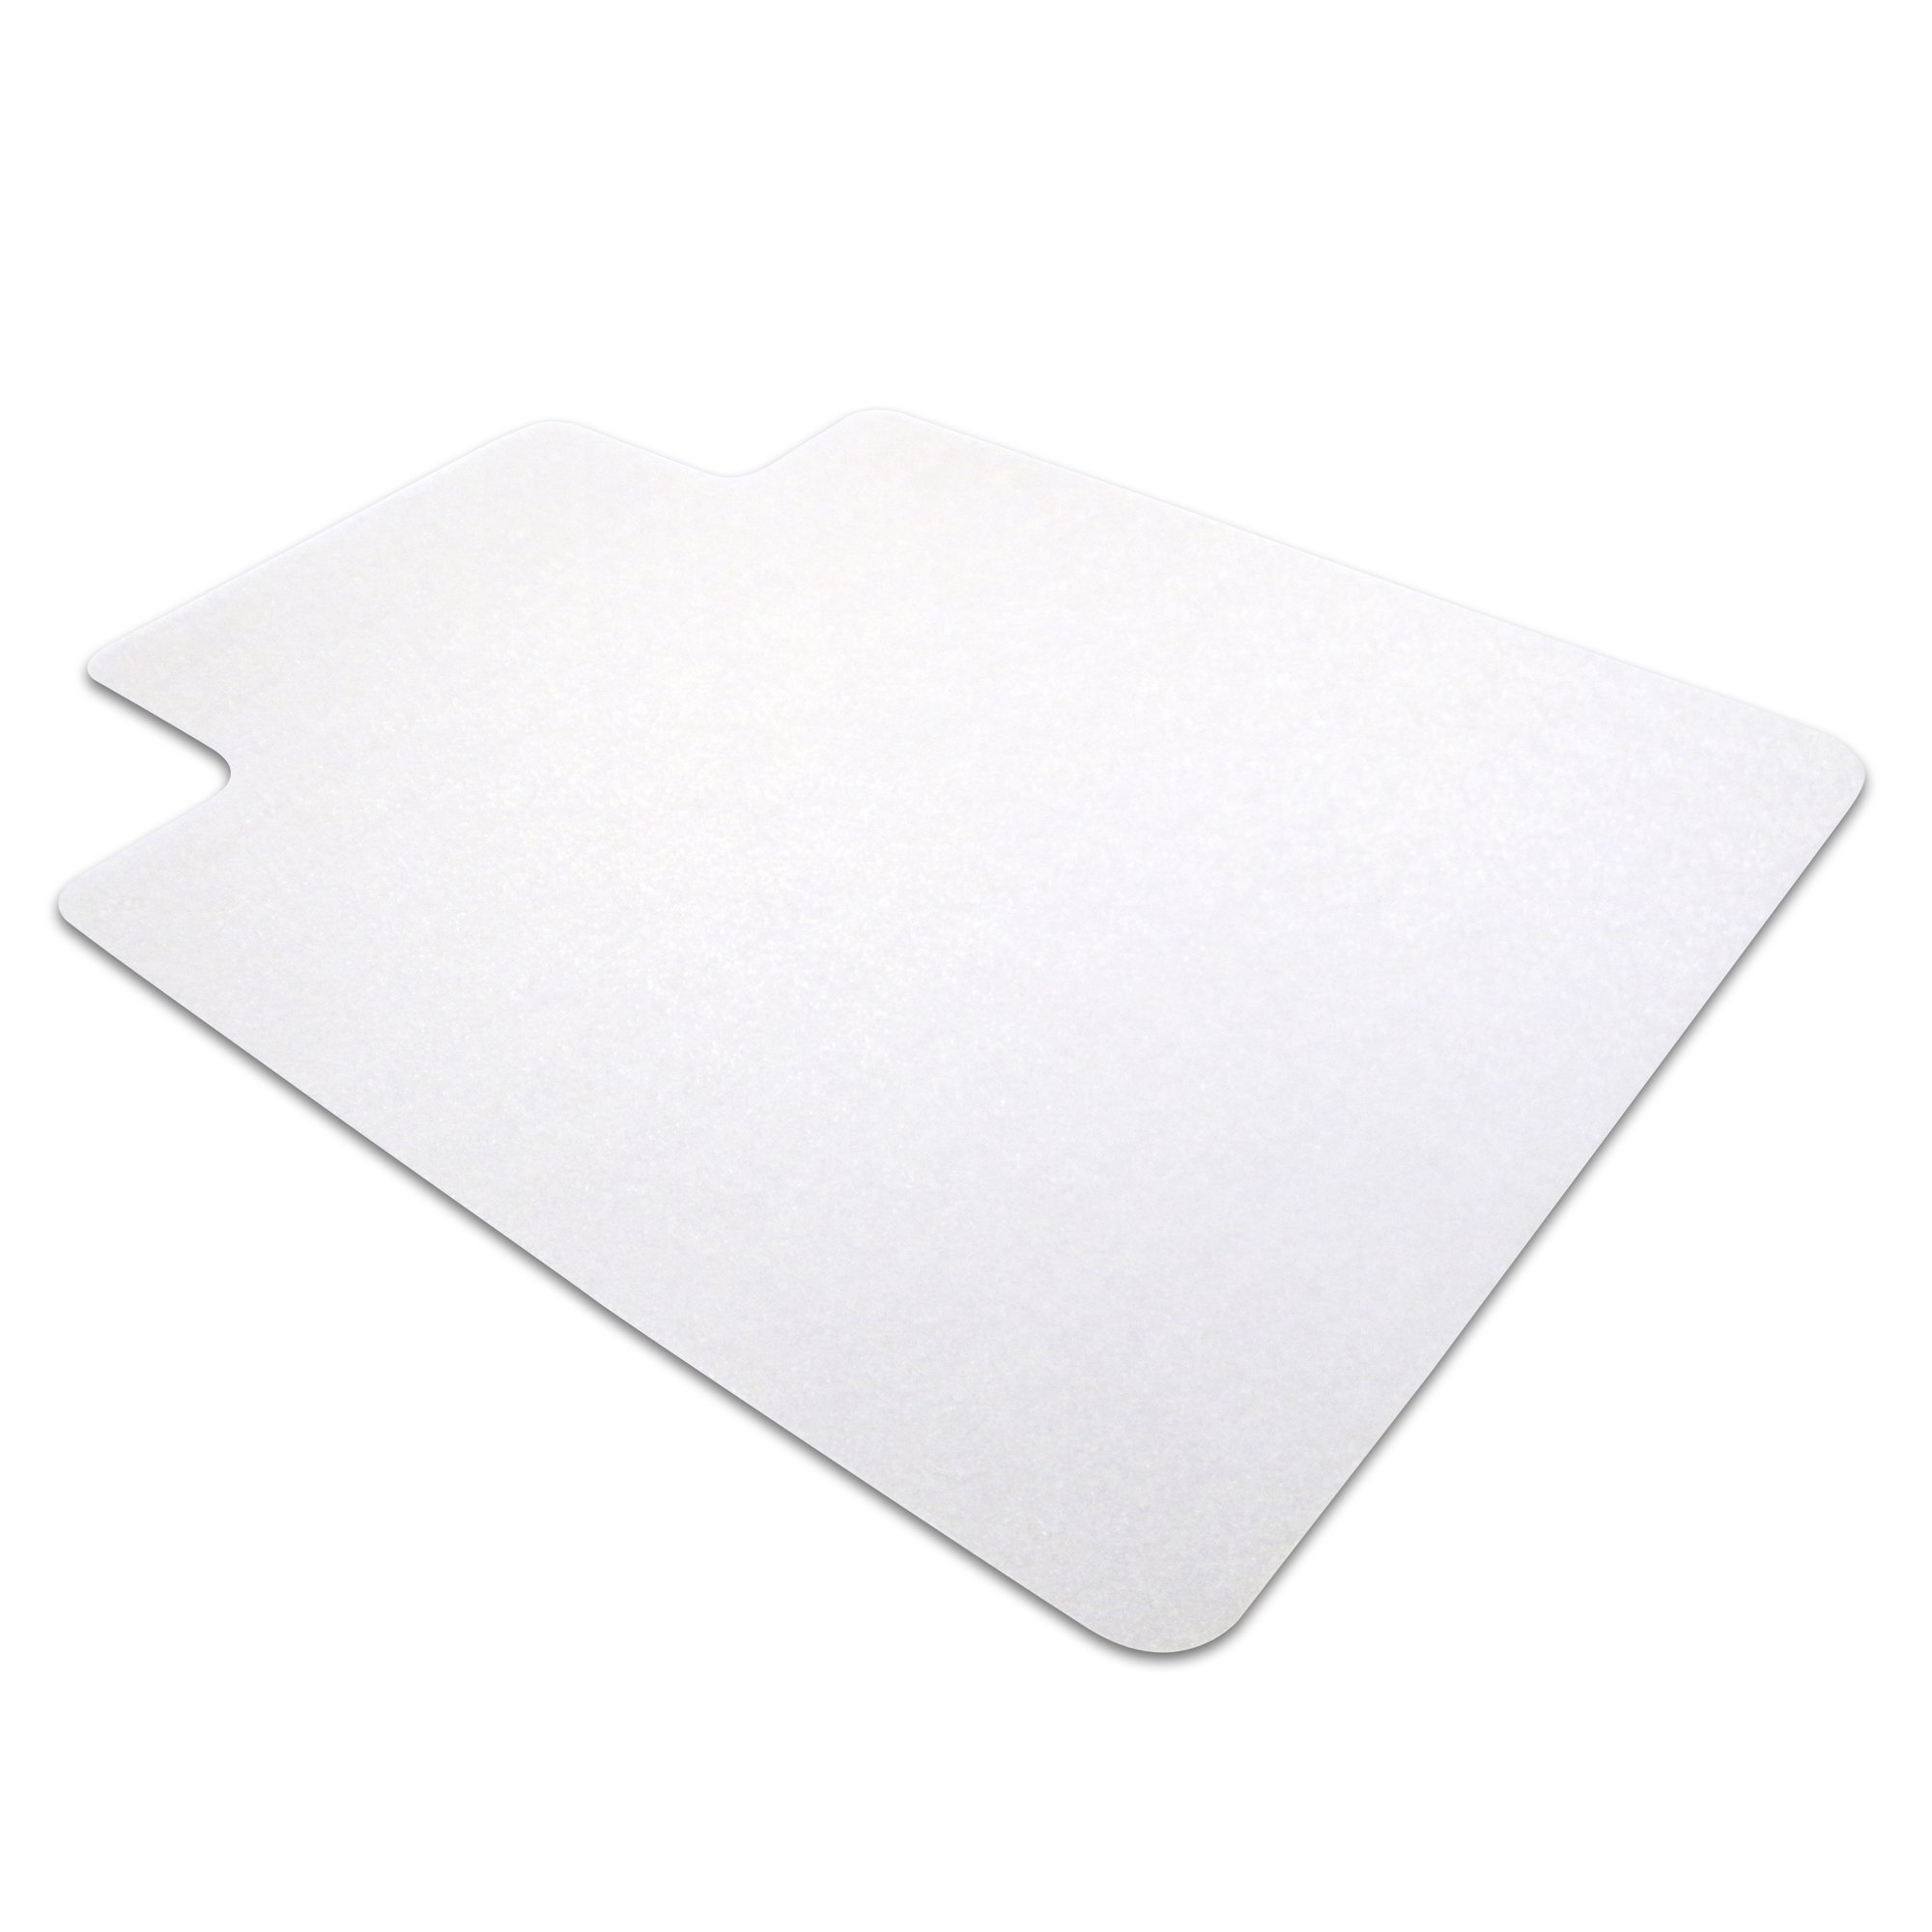 Chair Floor Mat Floortex Advantagemat Pvc Chair Mat For Hard Floors Wood